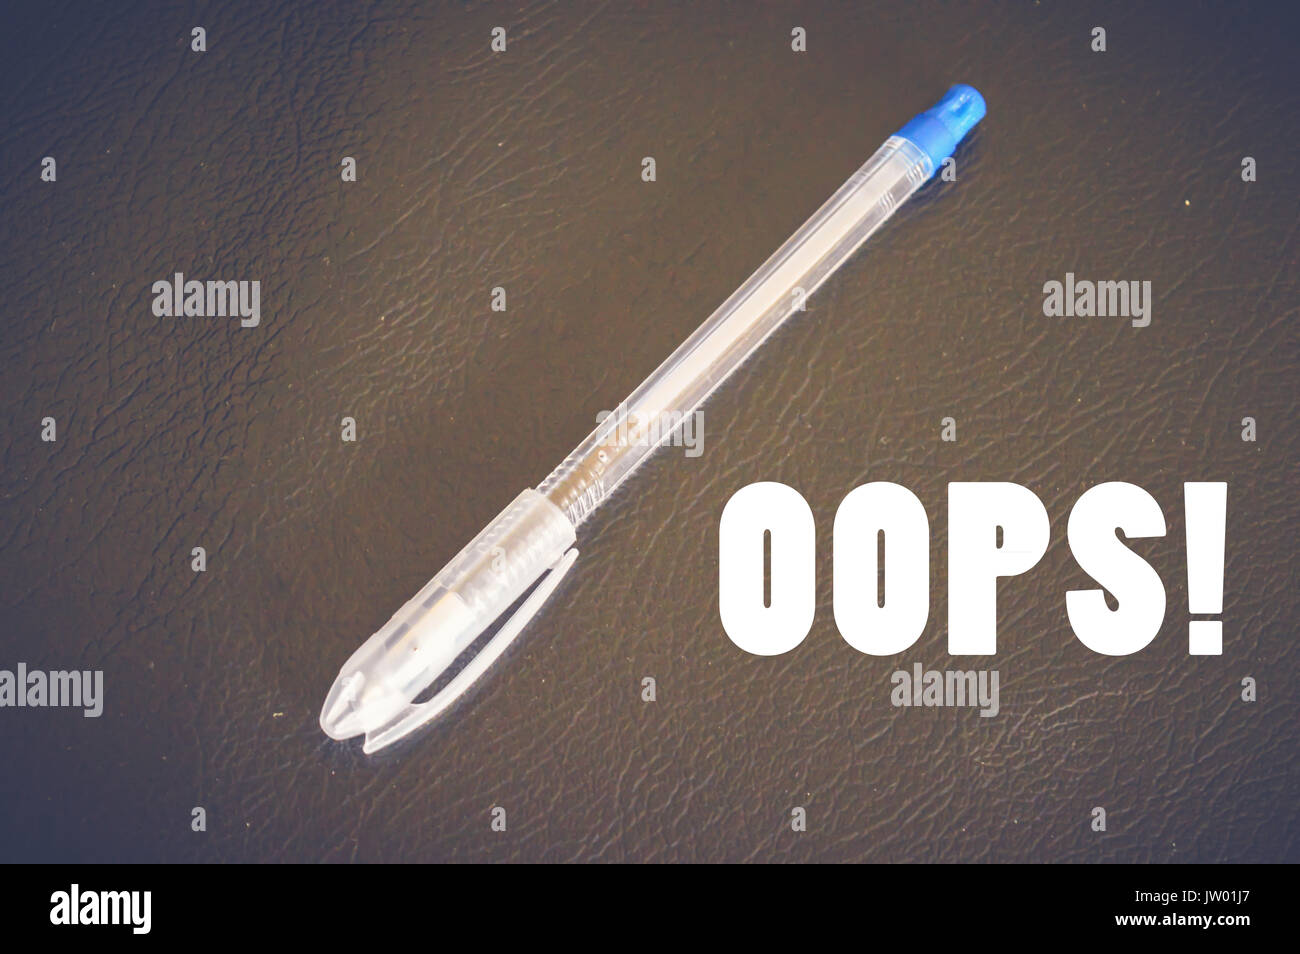 Oops! with pen on wooden table - Stock Image